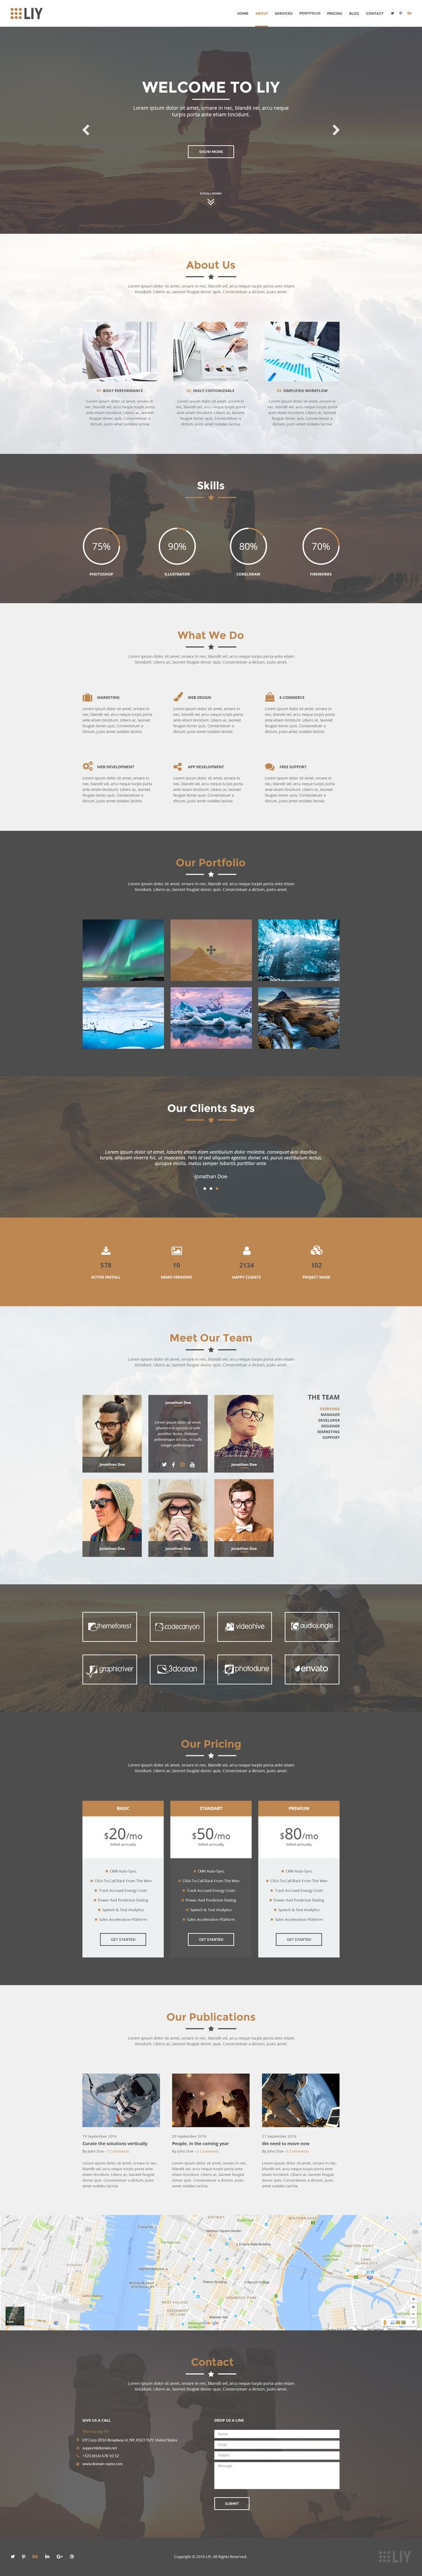 8195 template - Liy One Page Psd Template